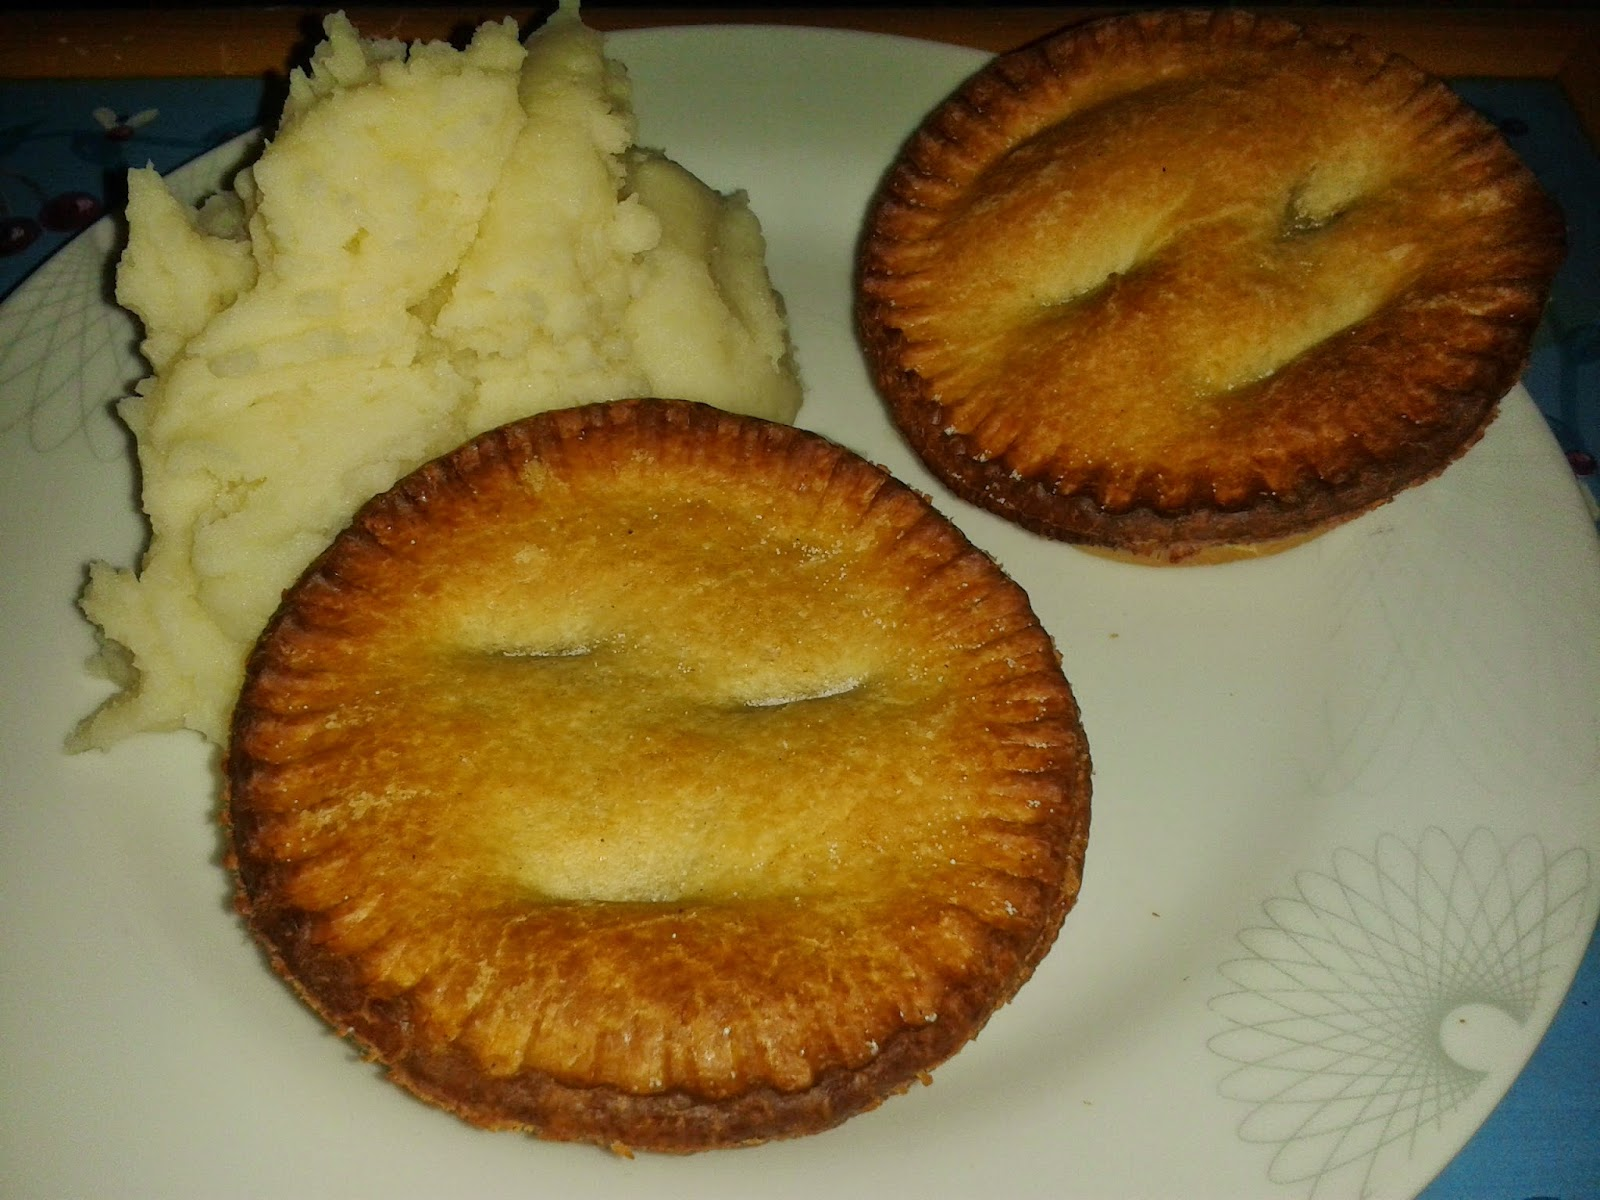 Pierate - Pie Reviews: Is Holland's Steak and Guinness pie ...